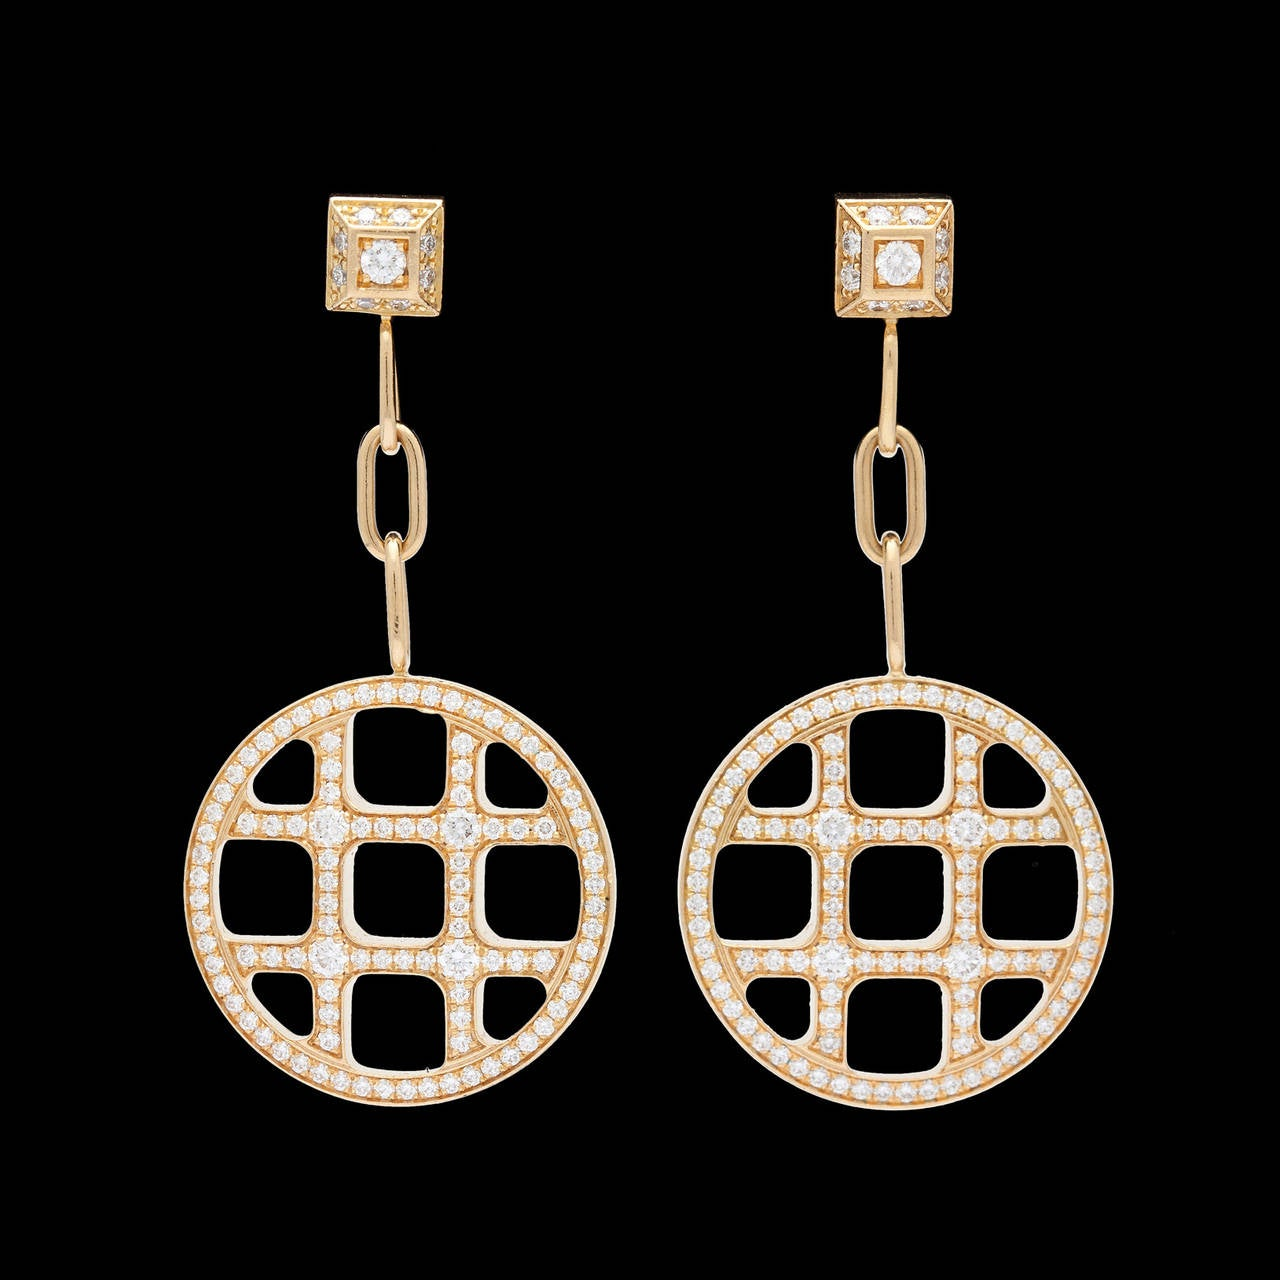 Pasha de Cartier 18Kt Yellow Gold Earrings Feature 228 Round Brilliant Cut Fine Diamonds for Approximately 1.40 Carat Total Weight. These light weight earrings hang approximately 1.5 inches and weigh 16.3 grams total.